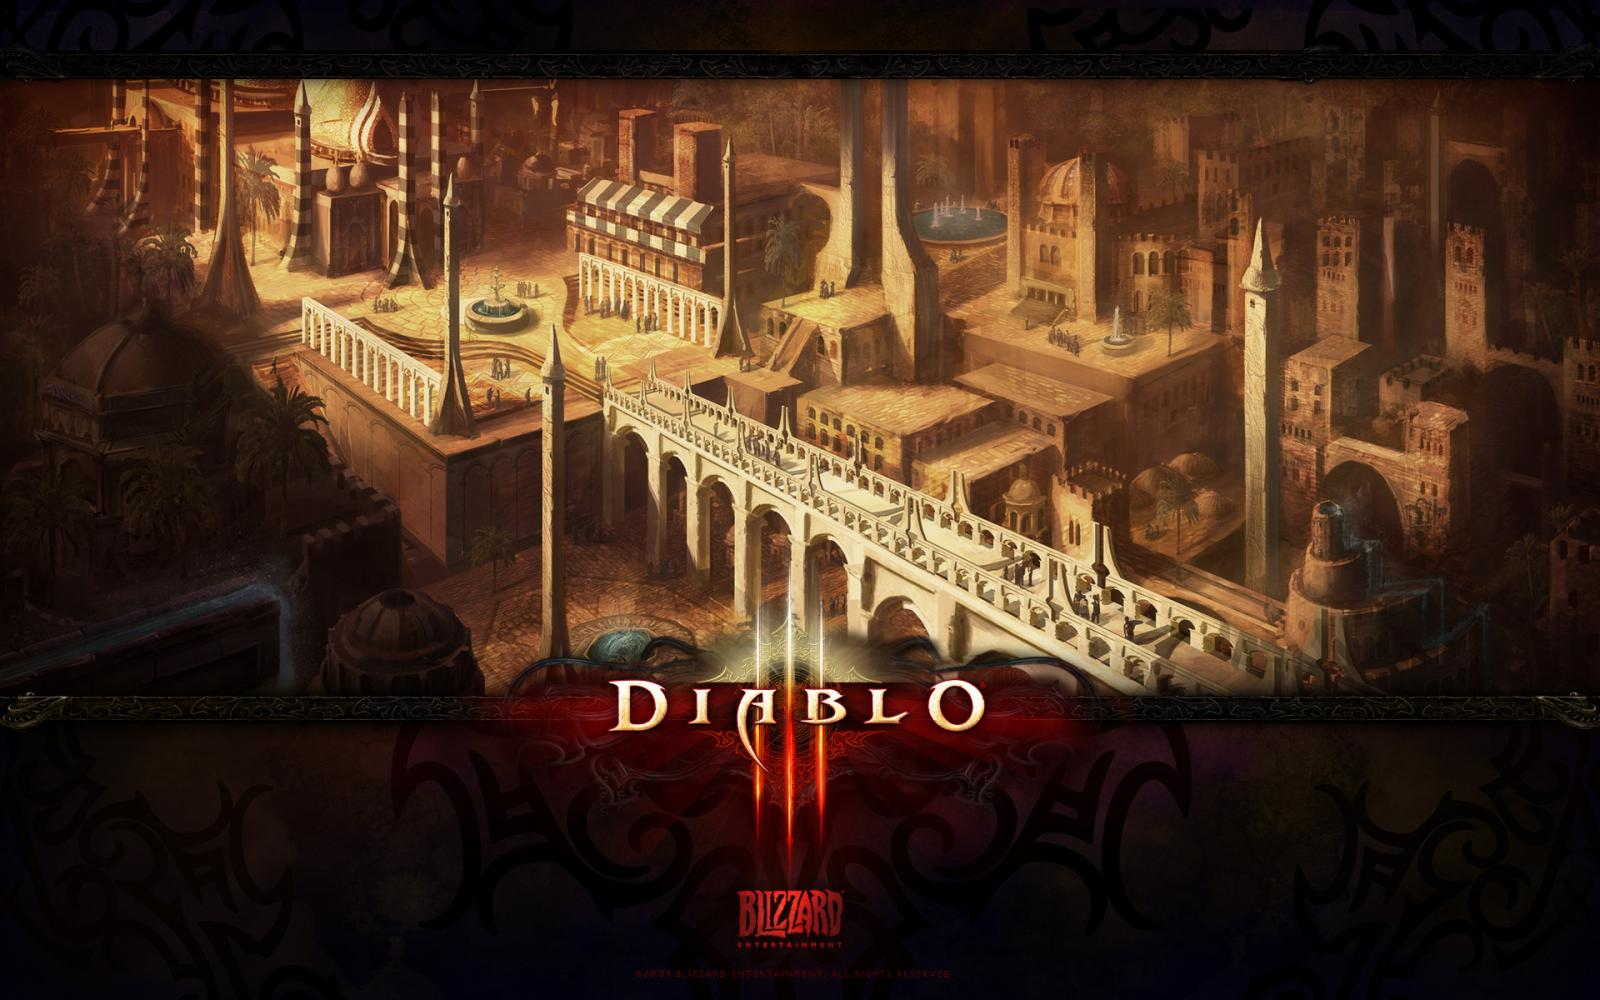 Wallpaper Diablo 3 Caldeum Jeux video